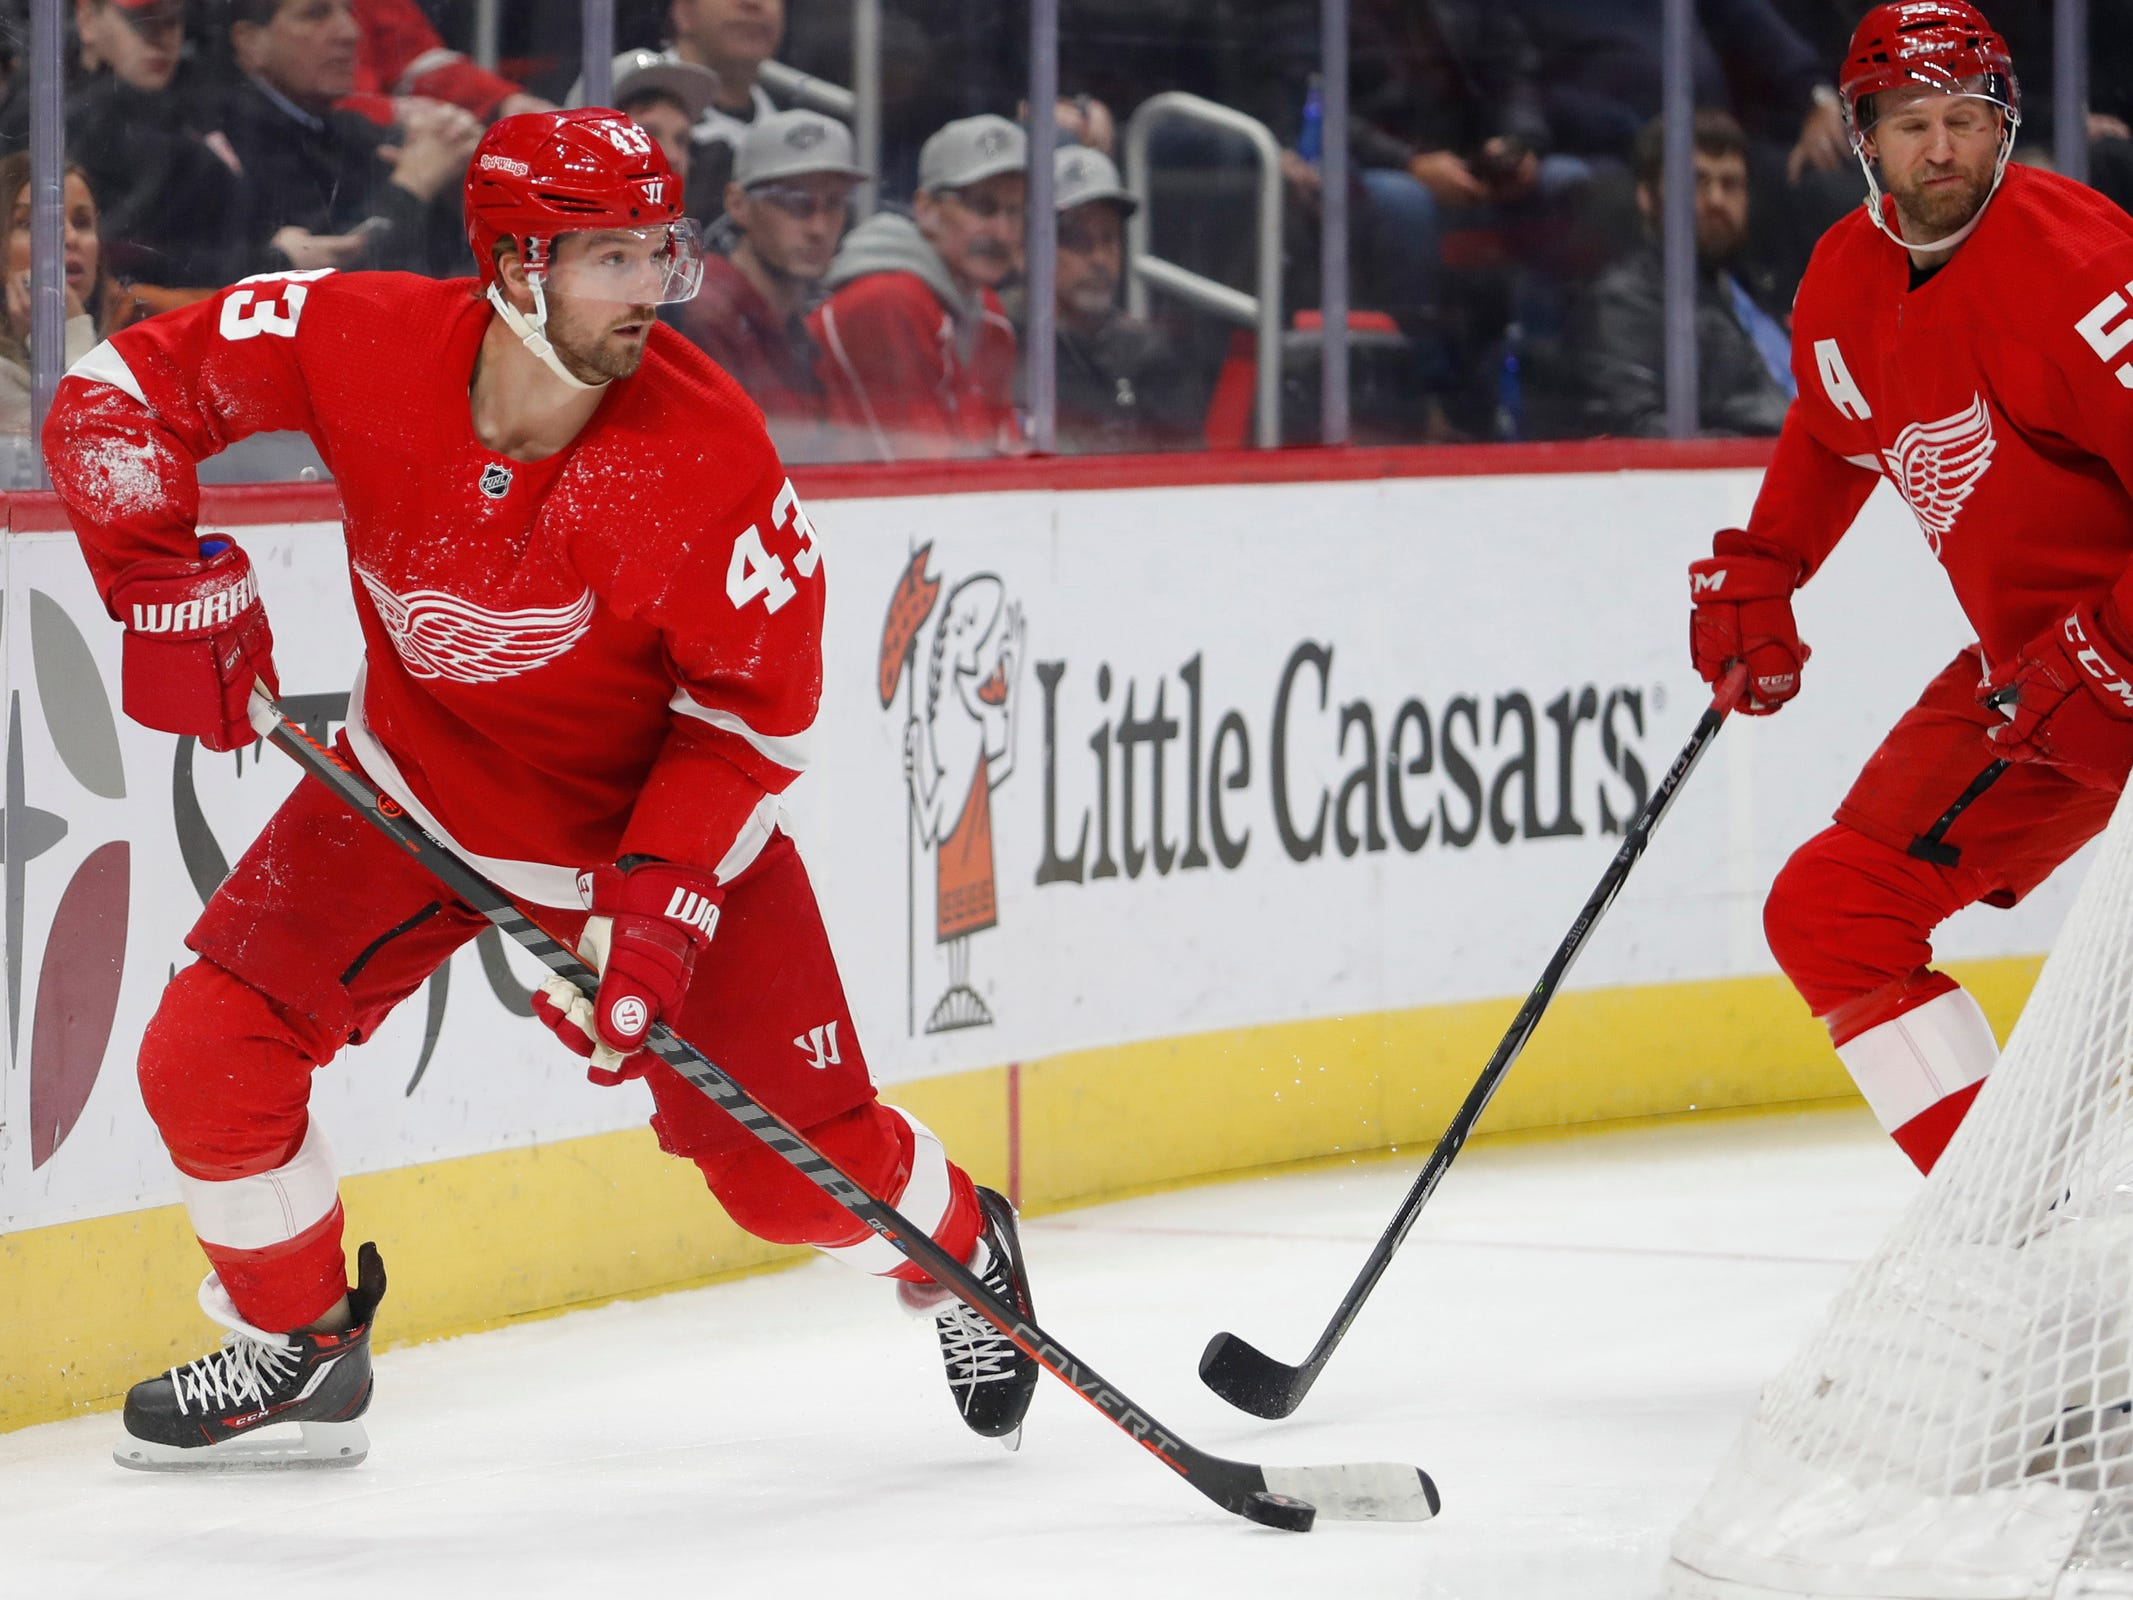 Detroit Red Wings left wing Darren Helm (43) looks for an open man during the first period against the Chicago Blackhawks at Little Caesars Arena on Feb. 20, 2019.